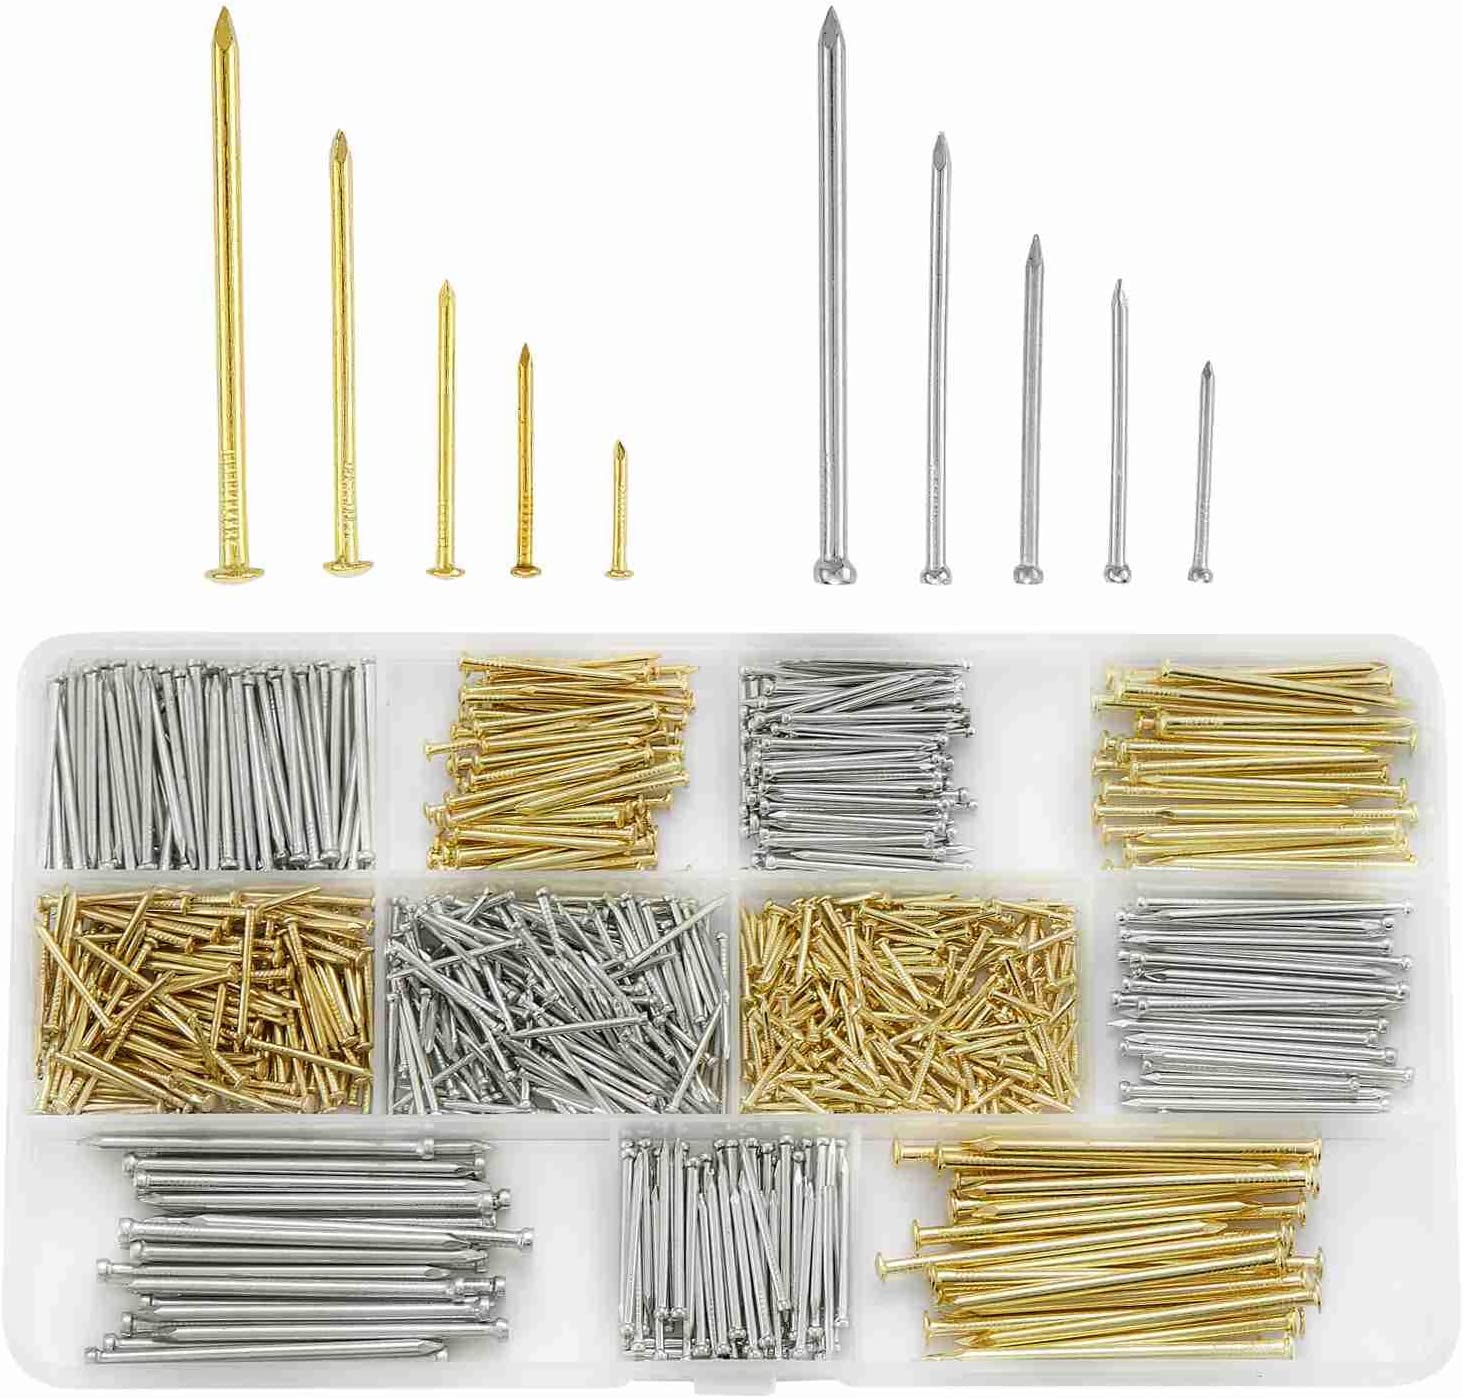 Litorange Hardware Assorted Nails Set 10 Sizes 900 PCS 13-50 Millimetres for Home Repair and DIY Finish Common Wood Furniture Home Assortment Construction Nails